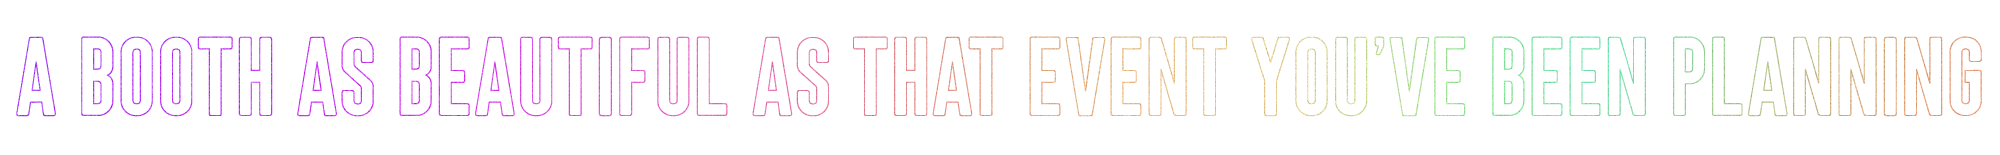 text_banner_805_pretty.png